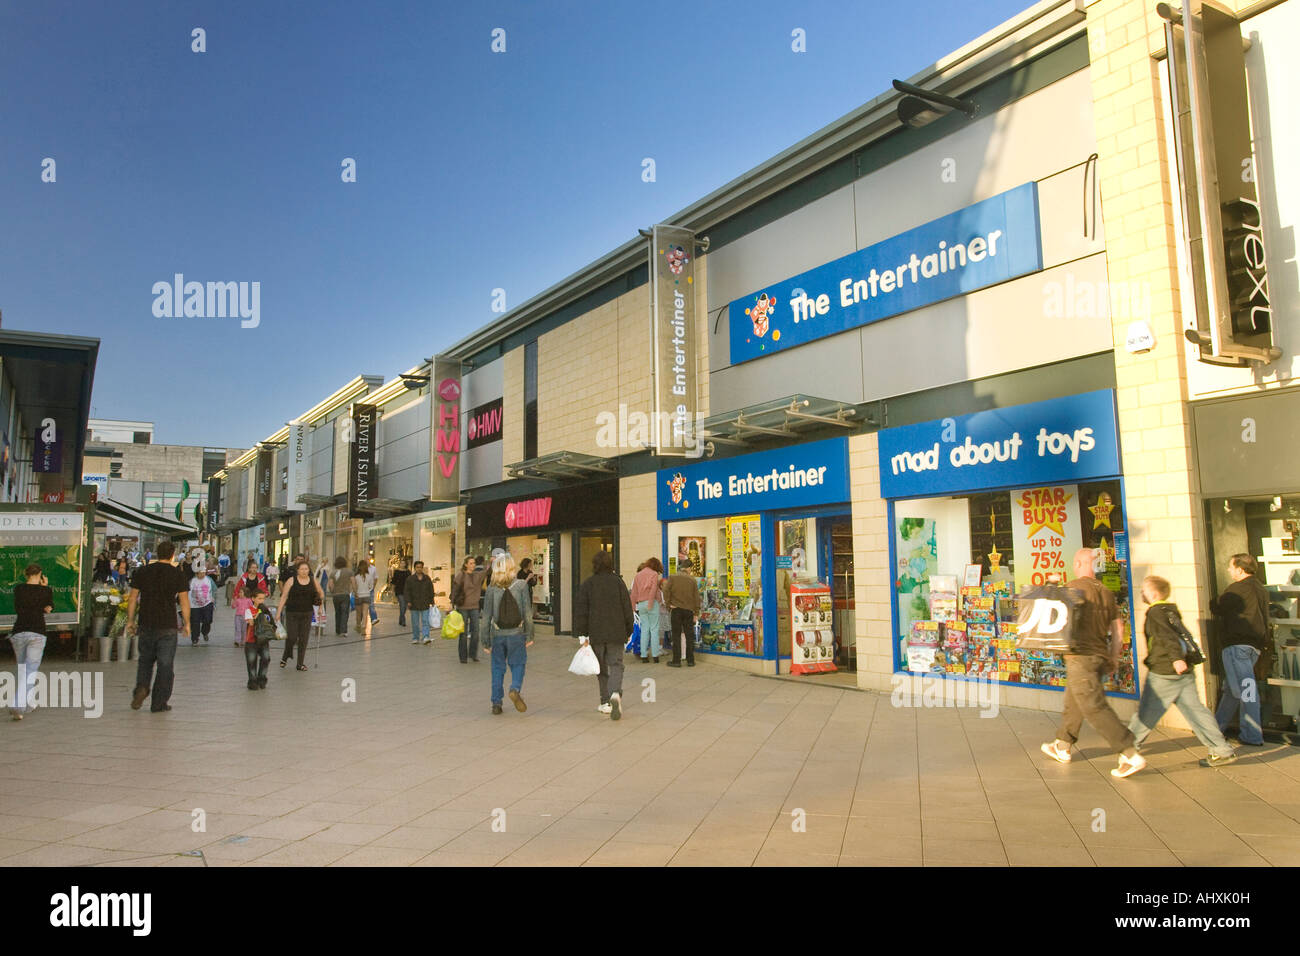 The Water Gardens A Pedestrianized Street In Harlow With Shops Where Stock Photo Royalty Free